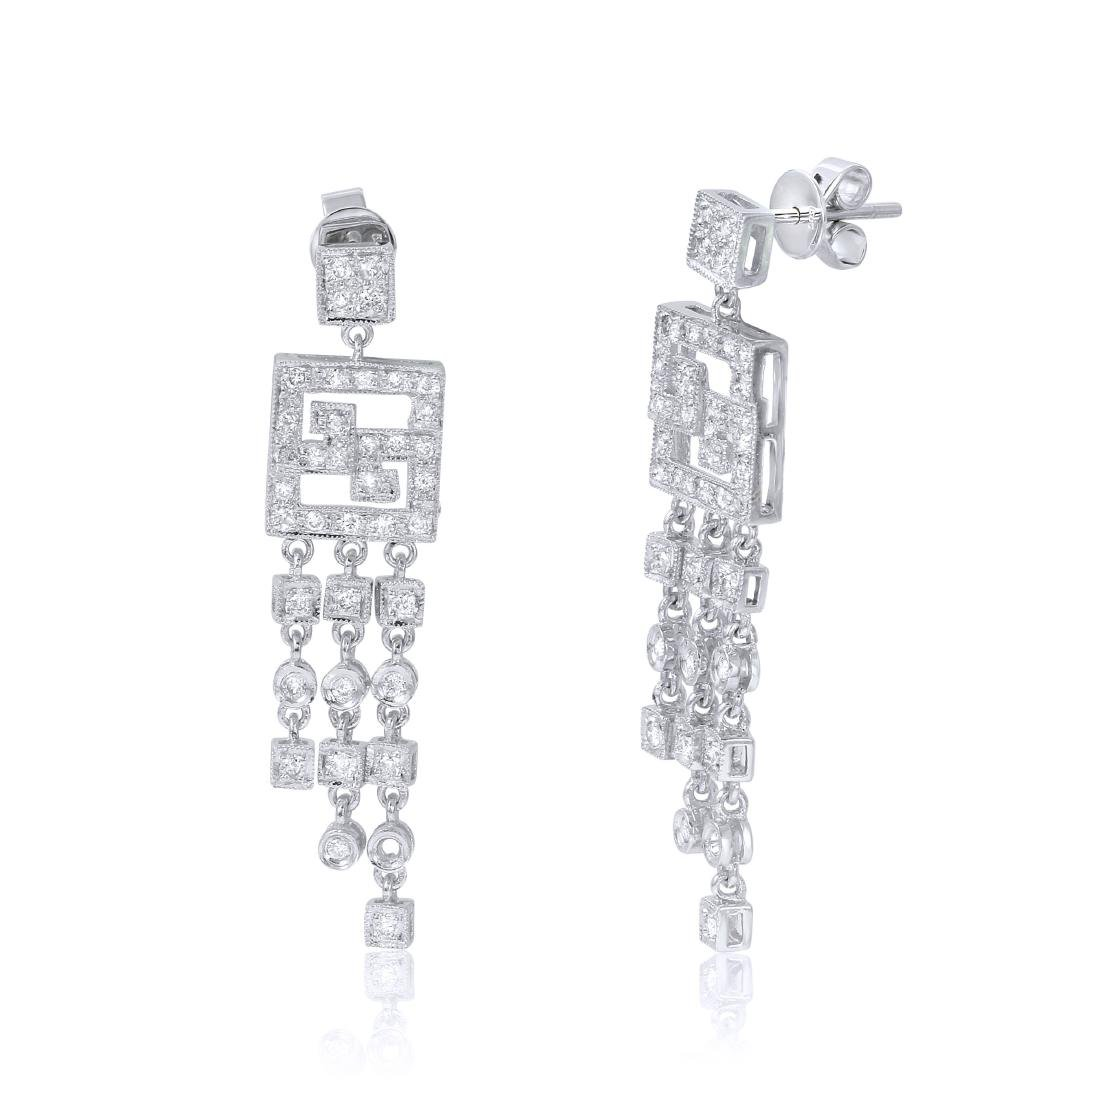 14KT White Gold Diamond Chandelier Earrings